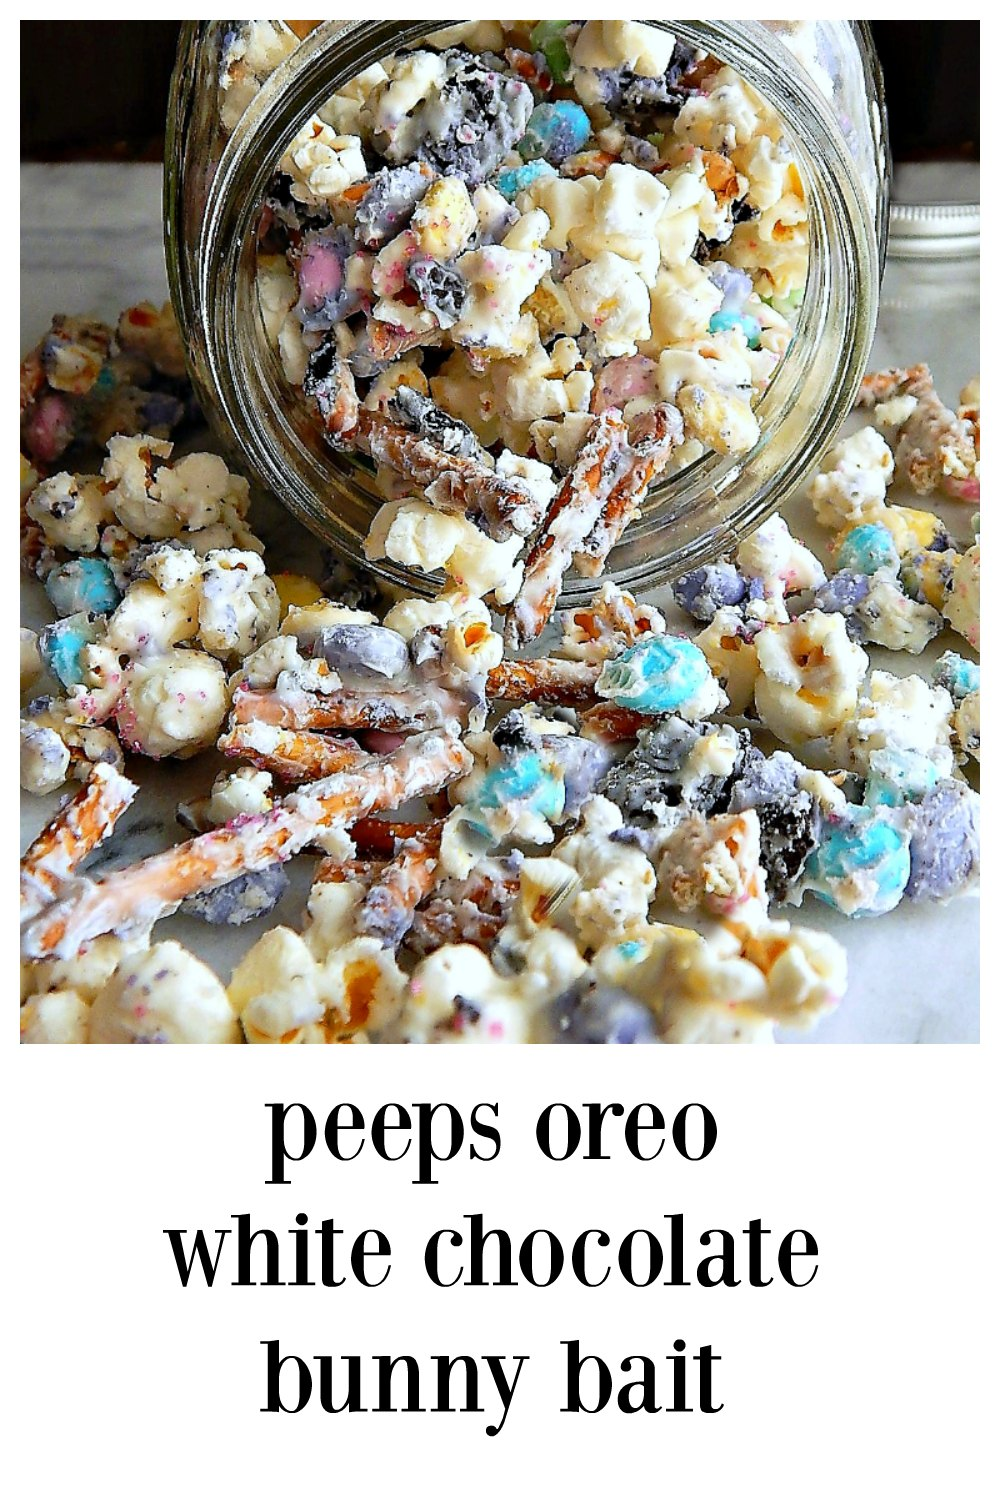 Peeps Oreo White Chocolate Pretzel Bunny Bait Popcorn: an addictive blend of Peeps Oreos, m&m's, pretzels & popcorn all melded together with white chocolate for a delicious treat. Easy to make and perfect for gift bags, adults and children go nuts over this party popcorn. #EasterTreats #EasterPopcorn #BunnyBait